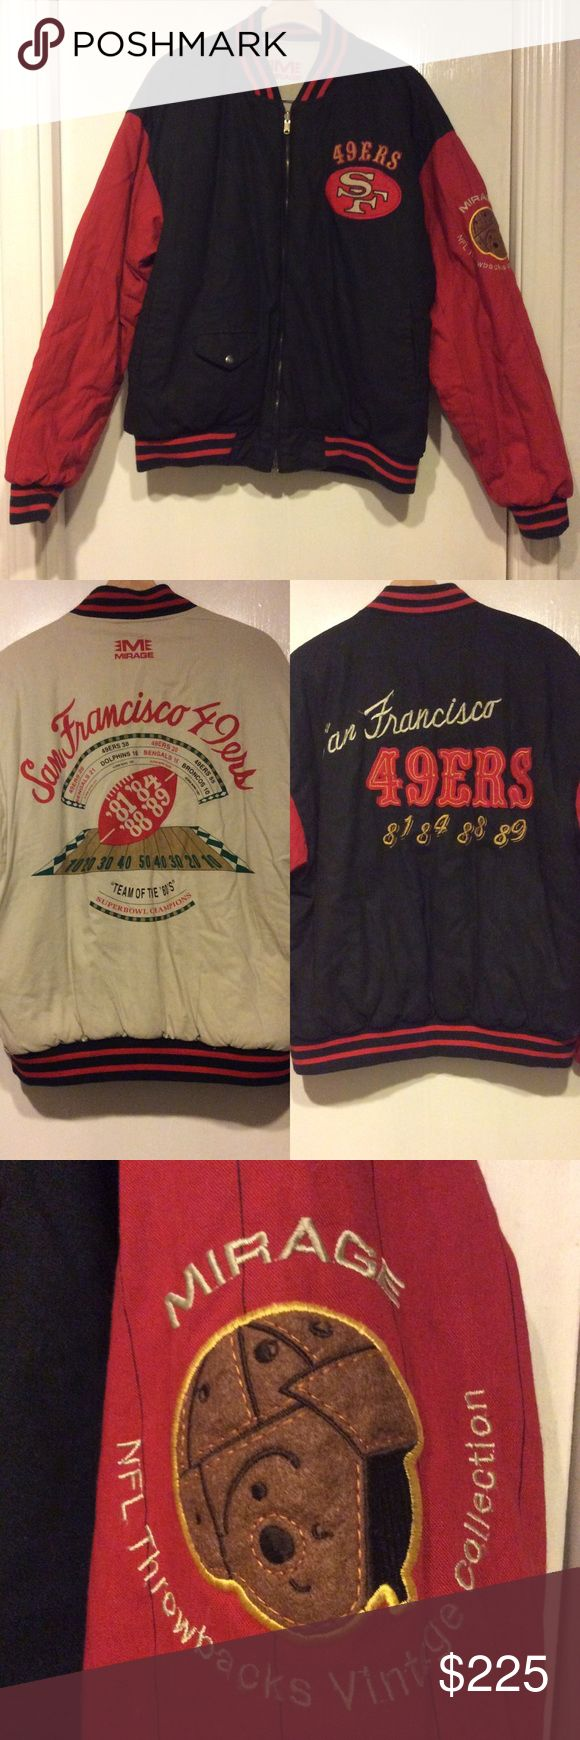 Very Rare Vintage Reversible 49ers Jacket, Mirage This vintage 49ers bomber jacket is extremely rare. And still in great condition. There is a minor stain on the lighter side of the jacket but it is very small. You can see this stain in the last picture. You won't find another jacket like this. Mirage  Jackets & Coats Bomber & Varsity